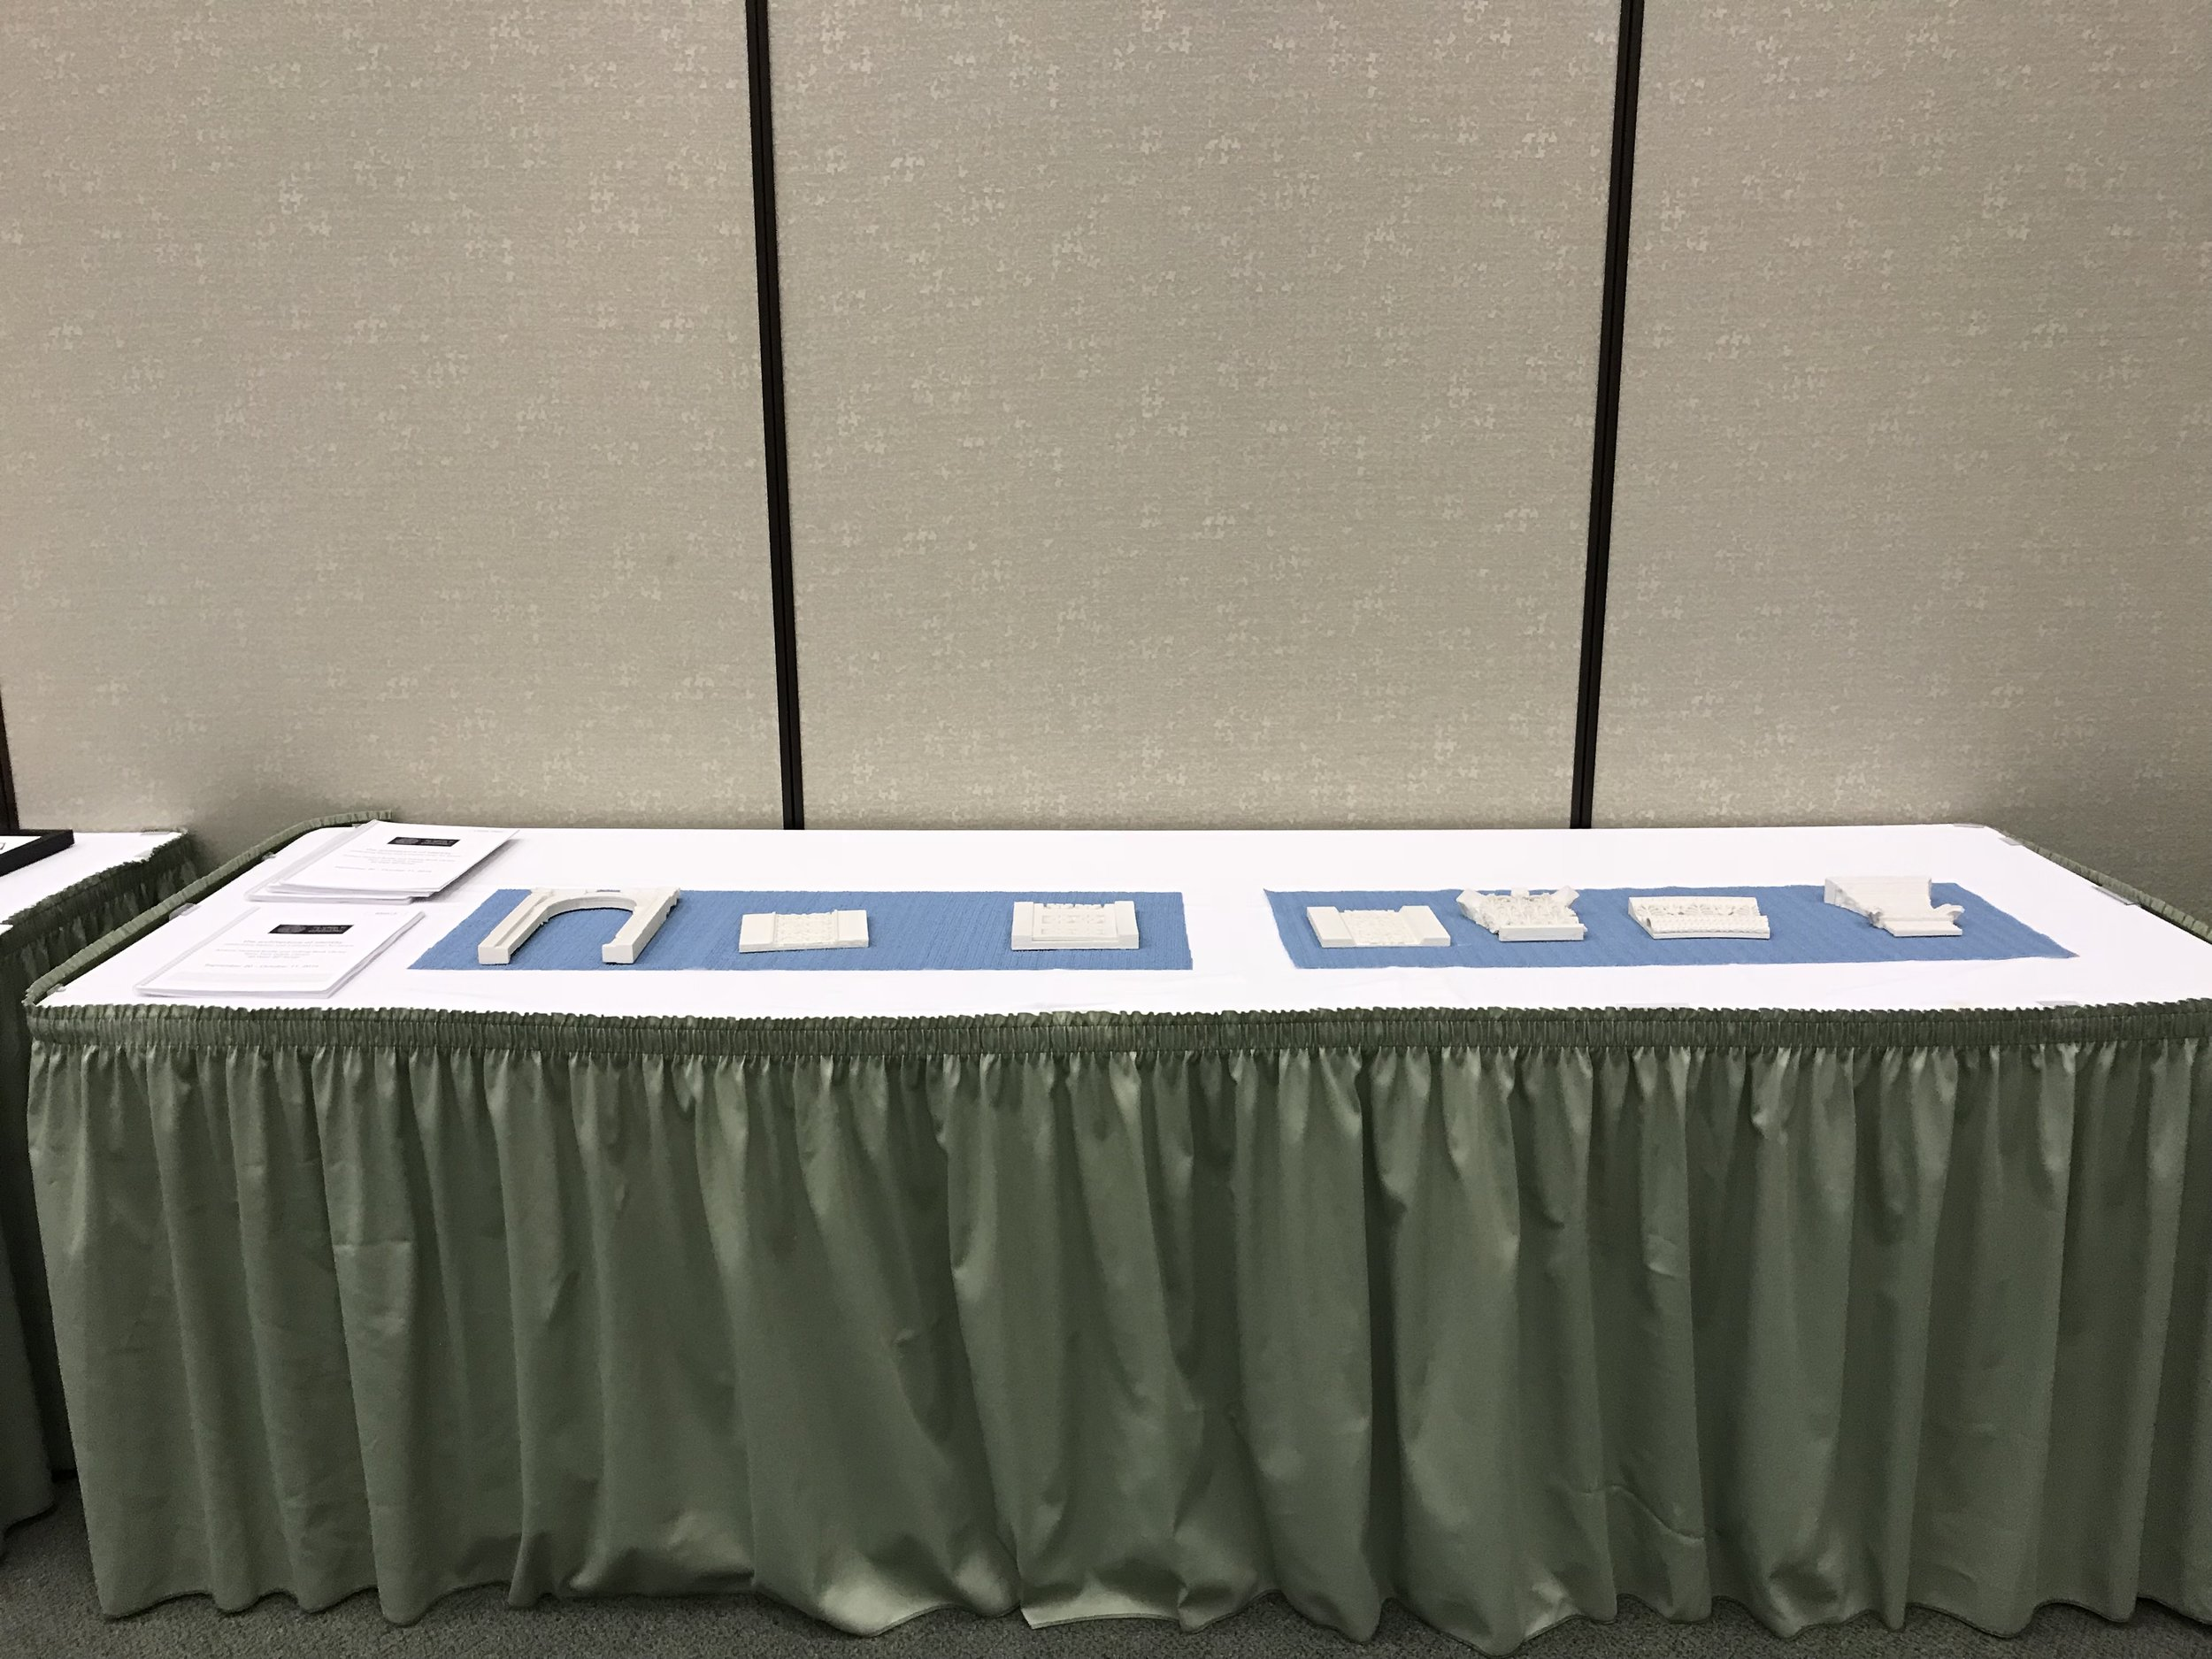 IDA's tactile arch exhibition at the NFB Tactile graphics symposium 2018